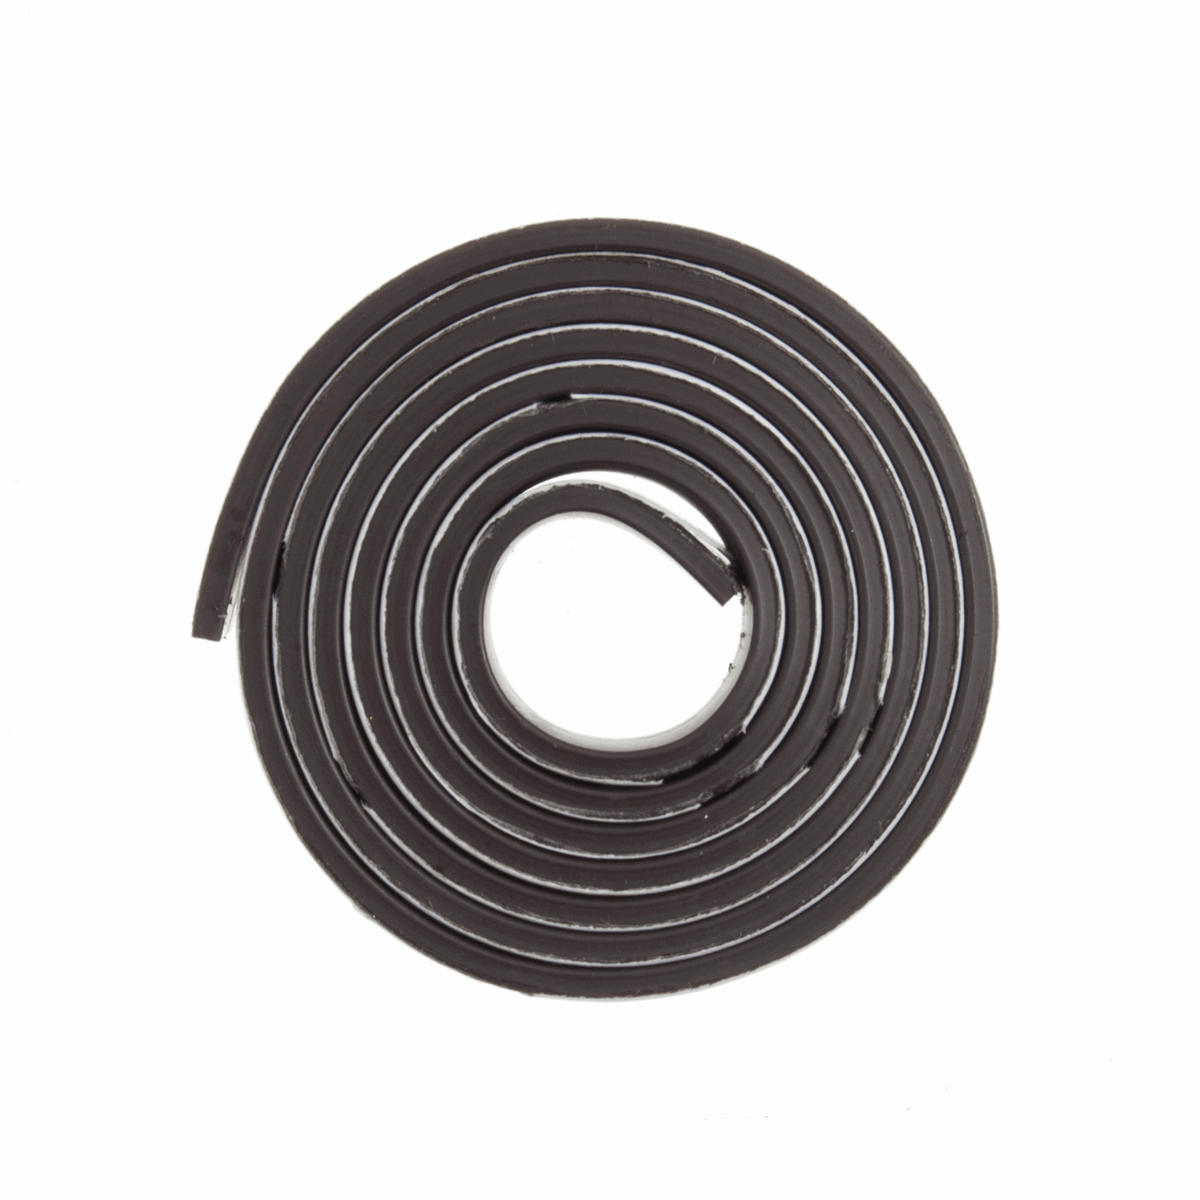 Picture of Magnet: Strip: Self-Adhesive: 750mm: 1 Piece